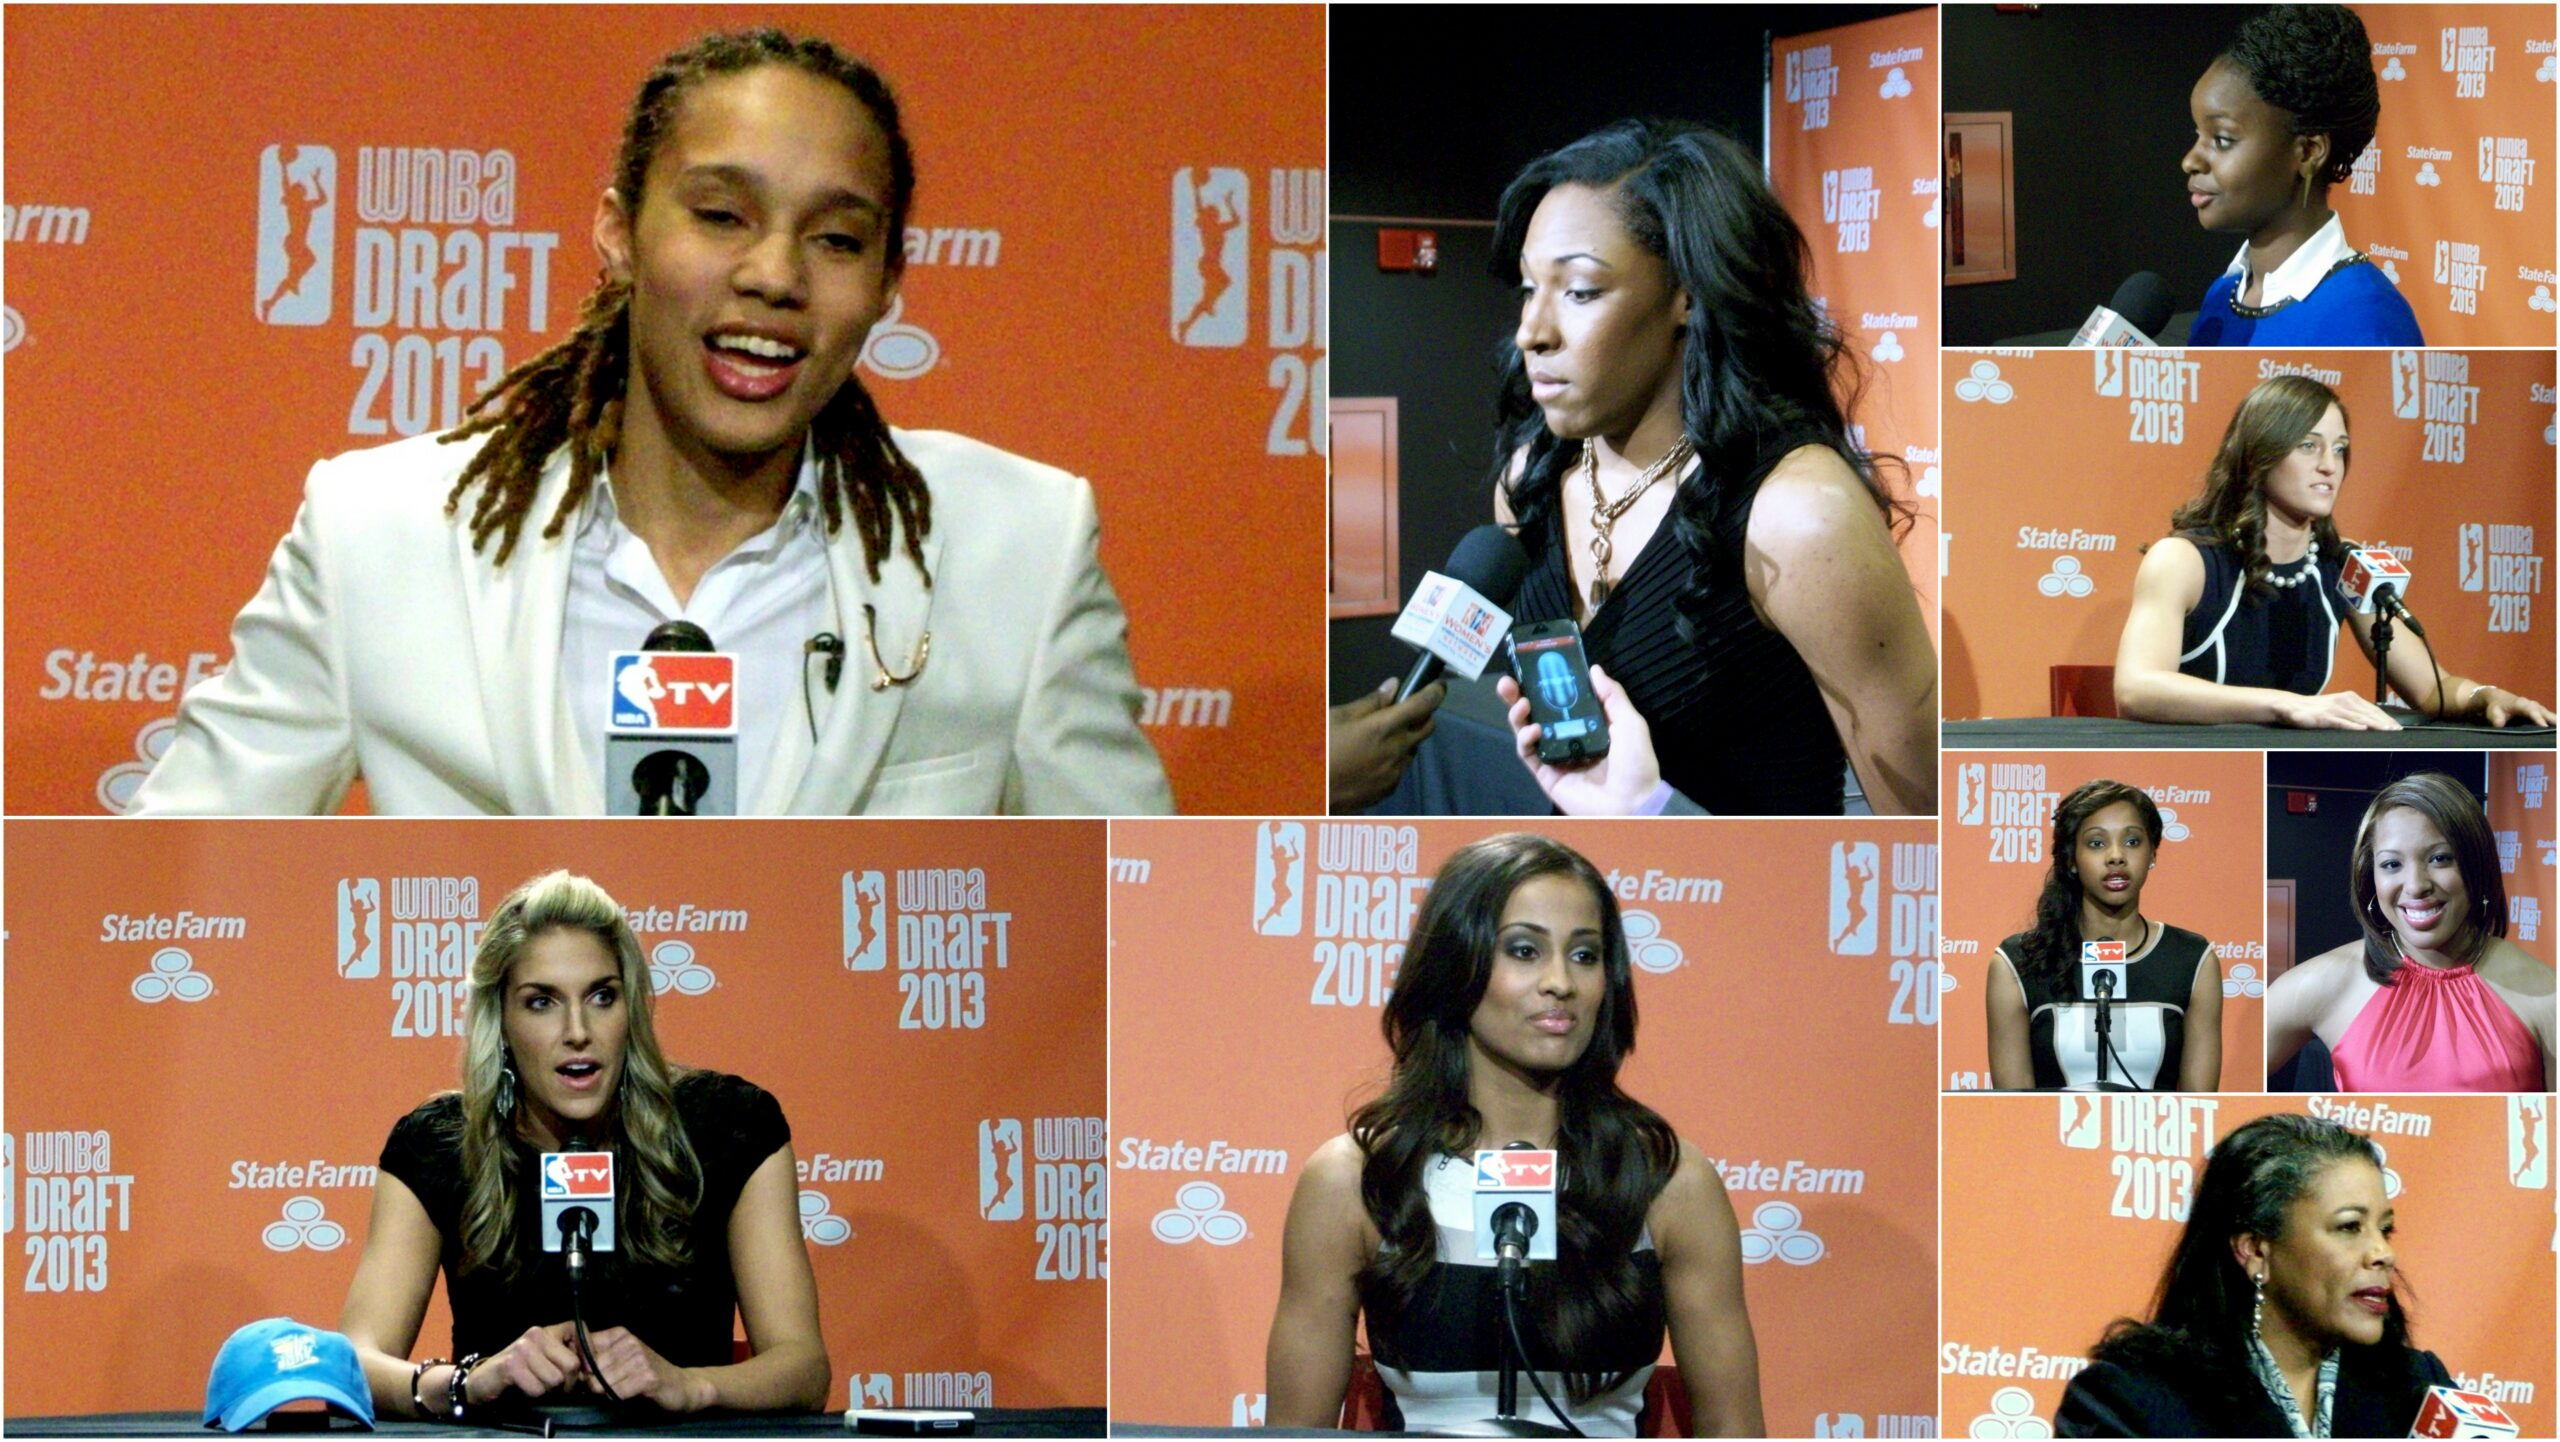 Dishin & Swishin 4/18/13 Podcast: The WNBA class of 2013, there may be three to see, but there's a lot more to adore!